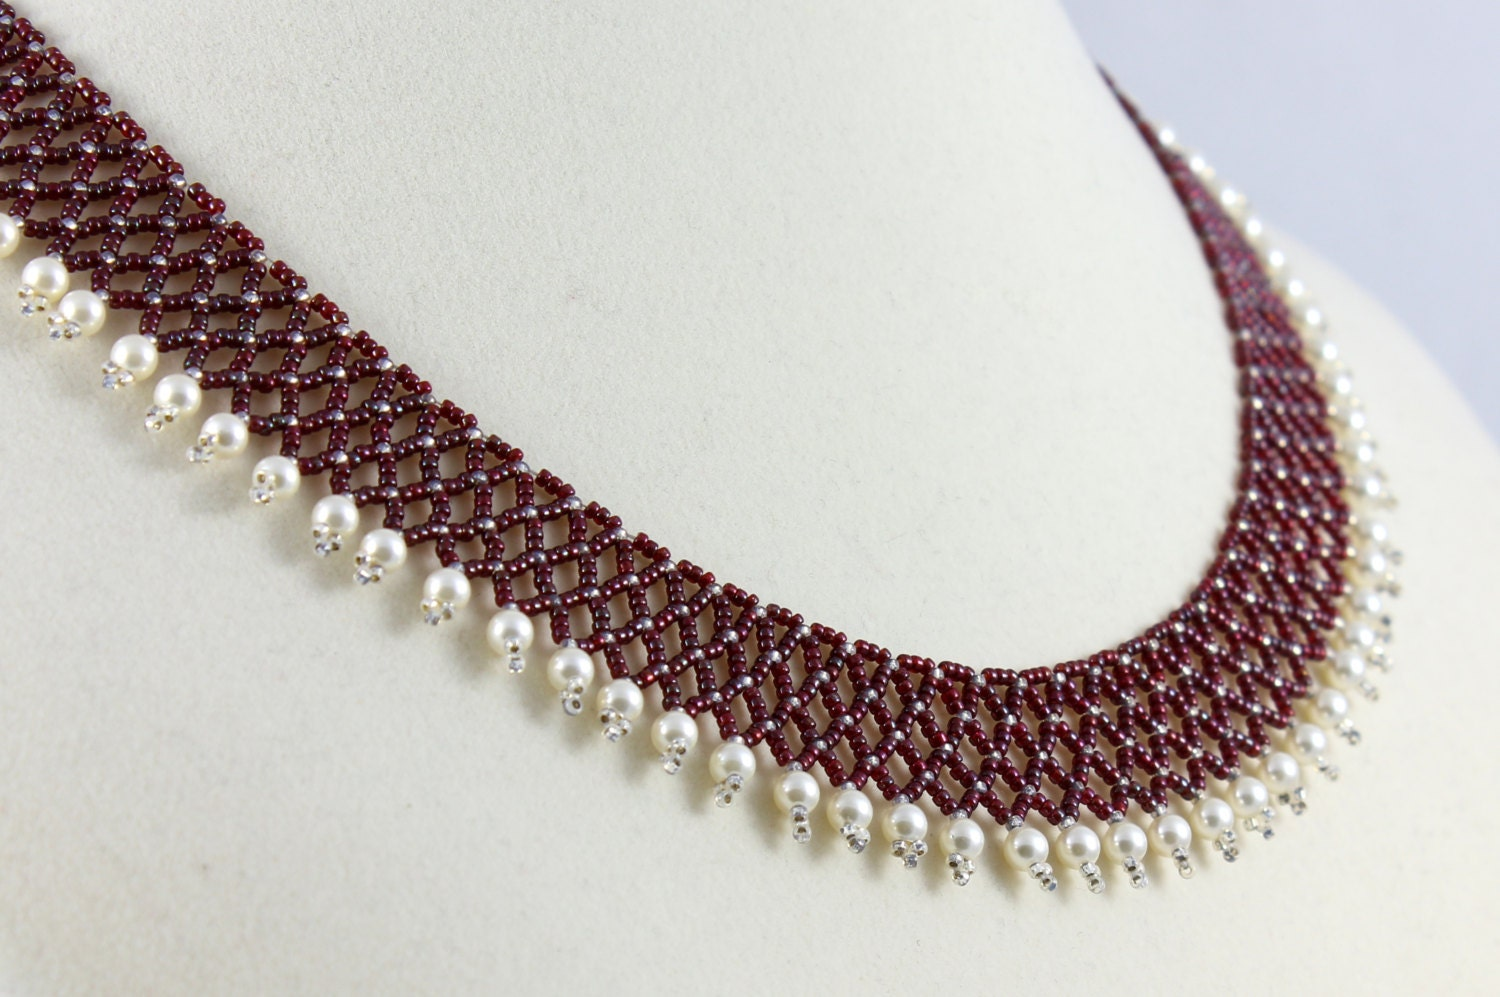 necklace seed bead necklace pearl collar netting